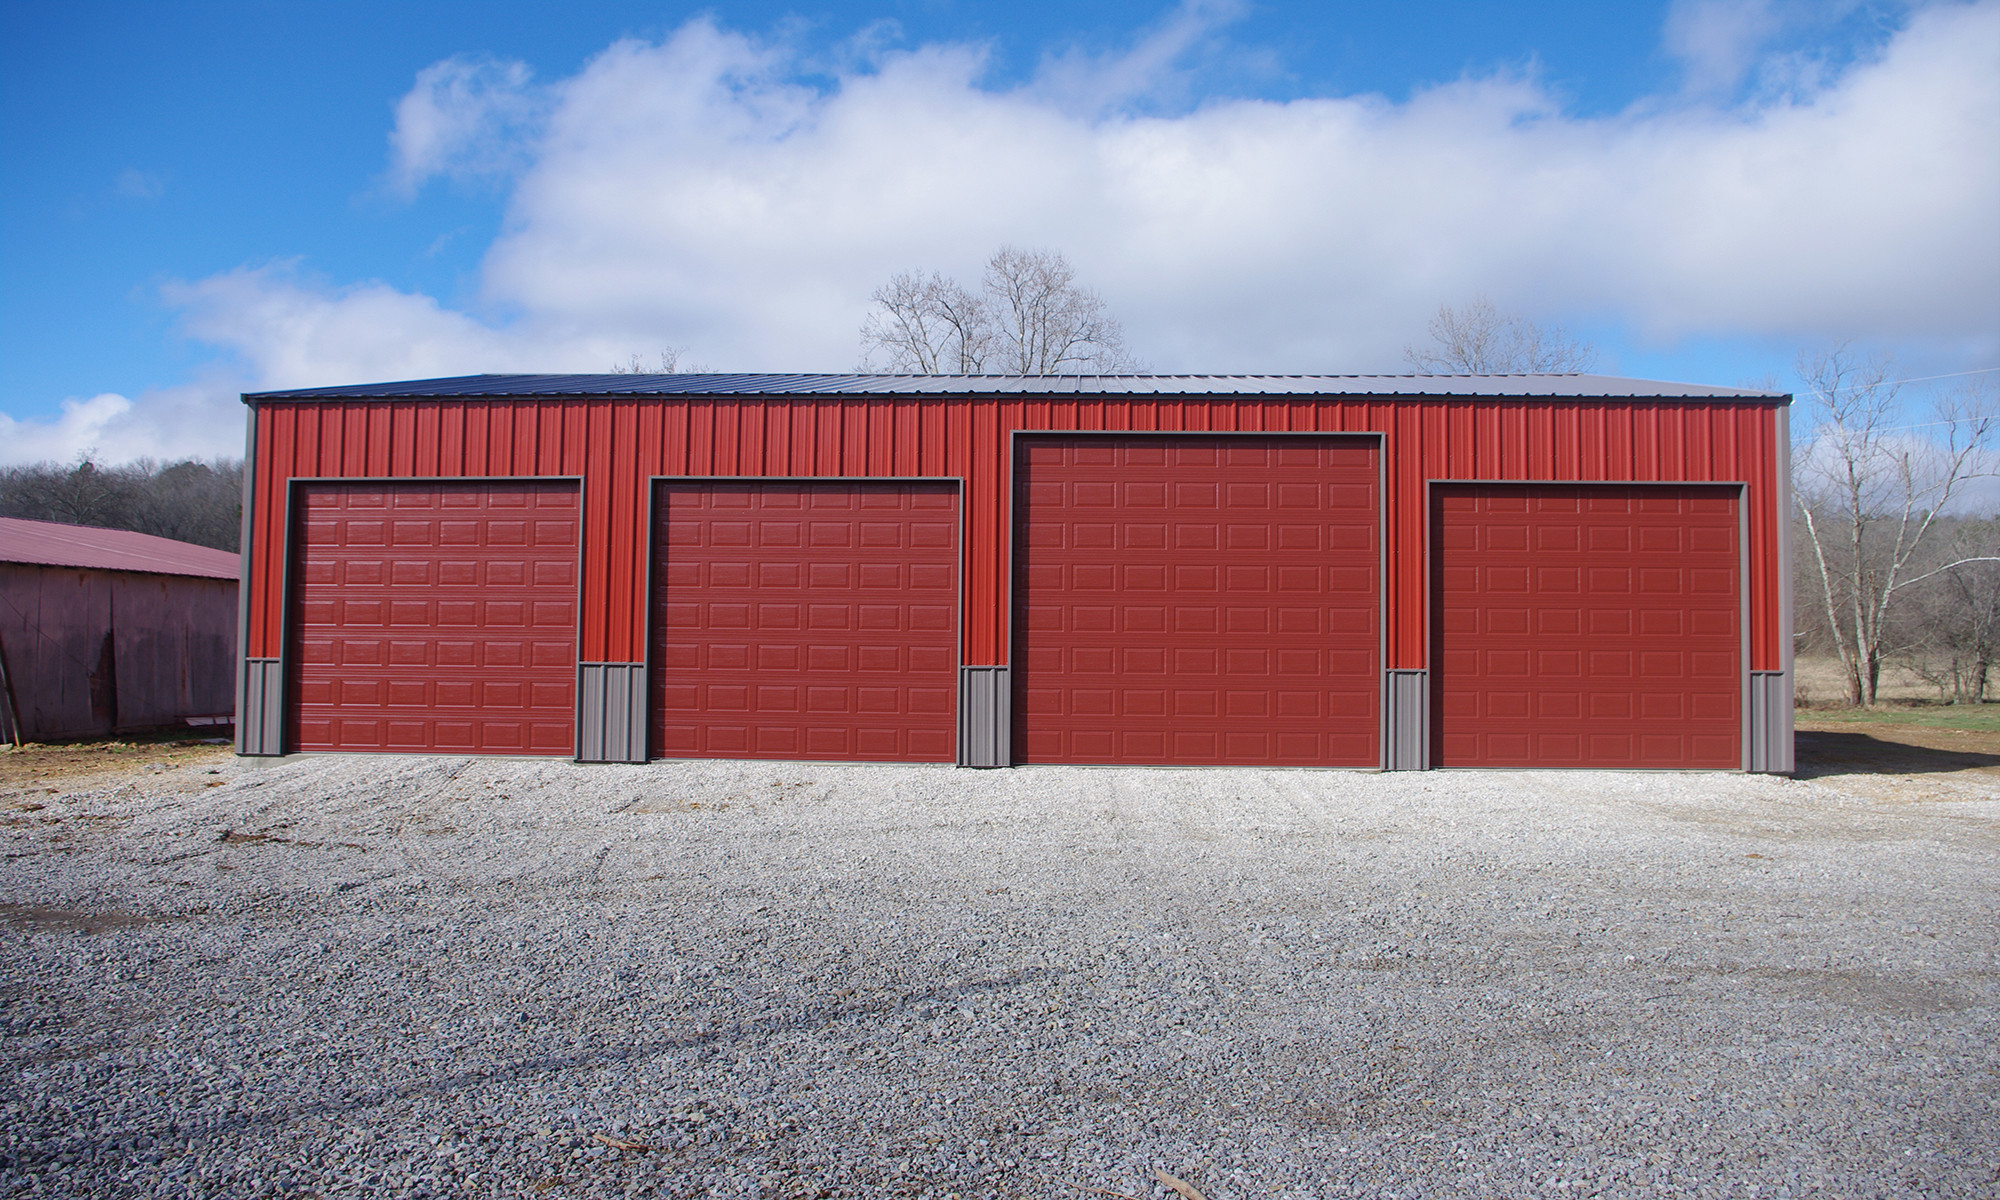 Best ideas about DIY Building Kits . Save or Pin Global Steel Buildings Now.